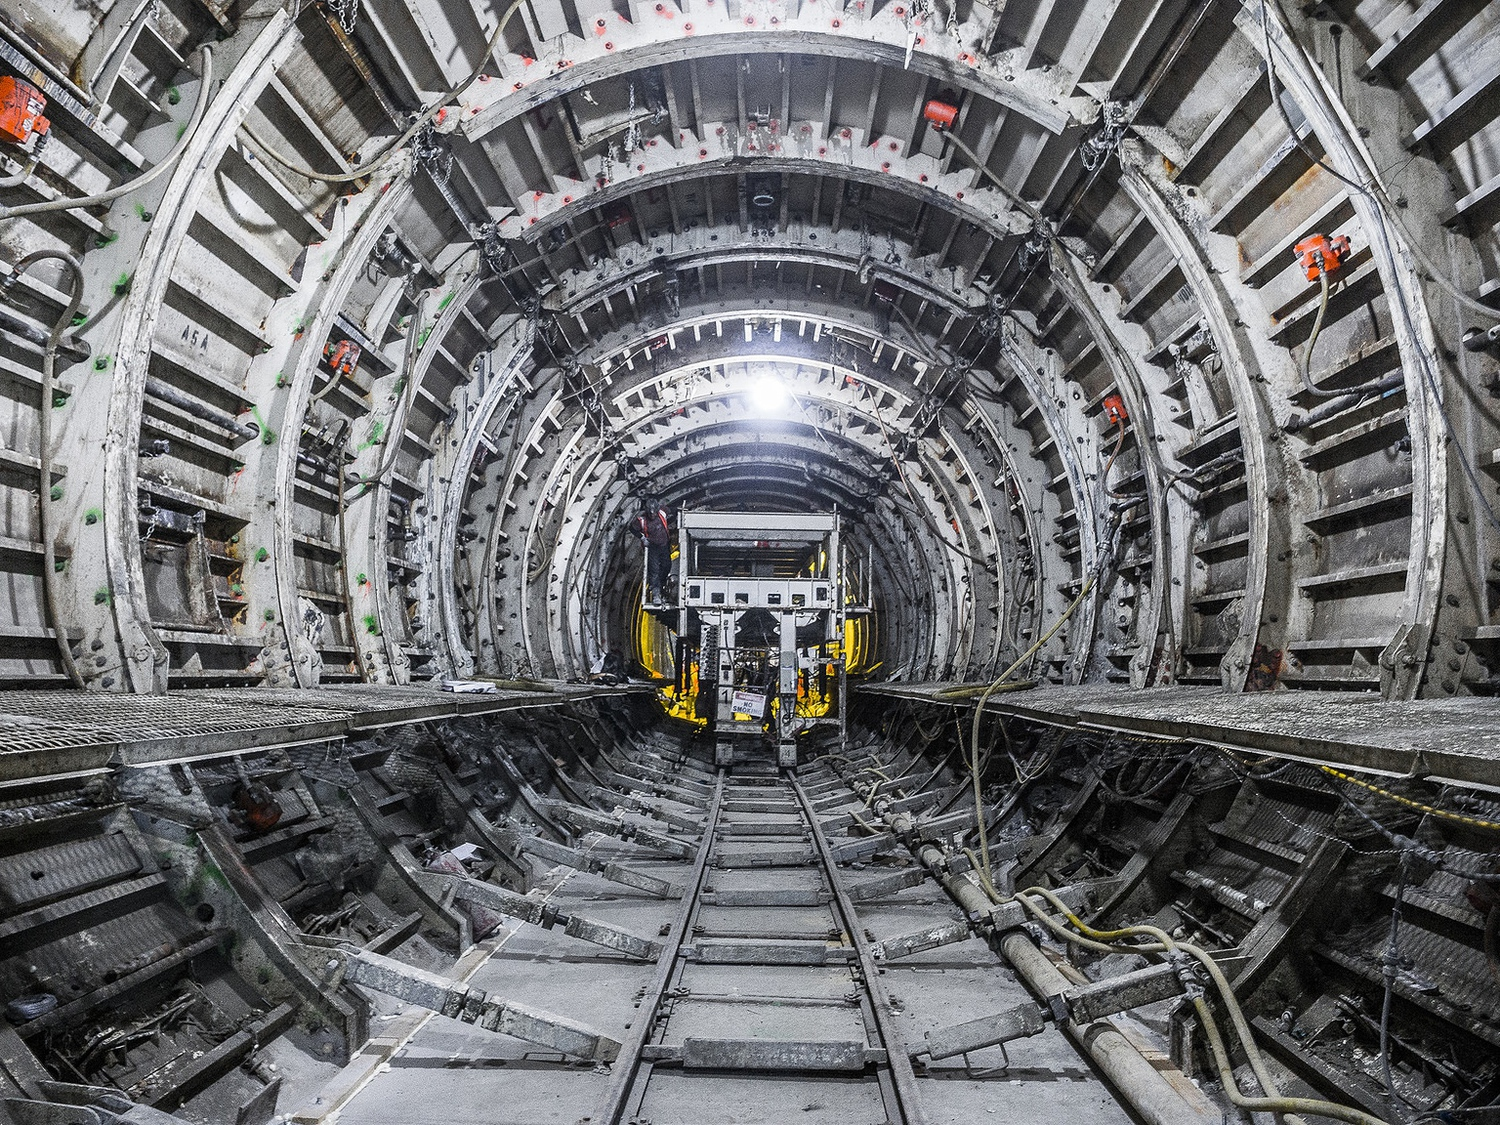 The first phase of NYC's Second Avenue Subway line is scheduled to open in 2016.